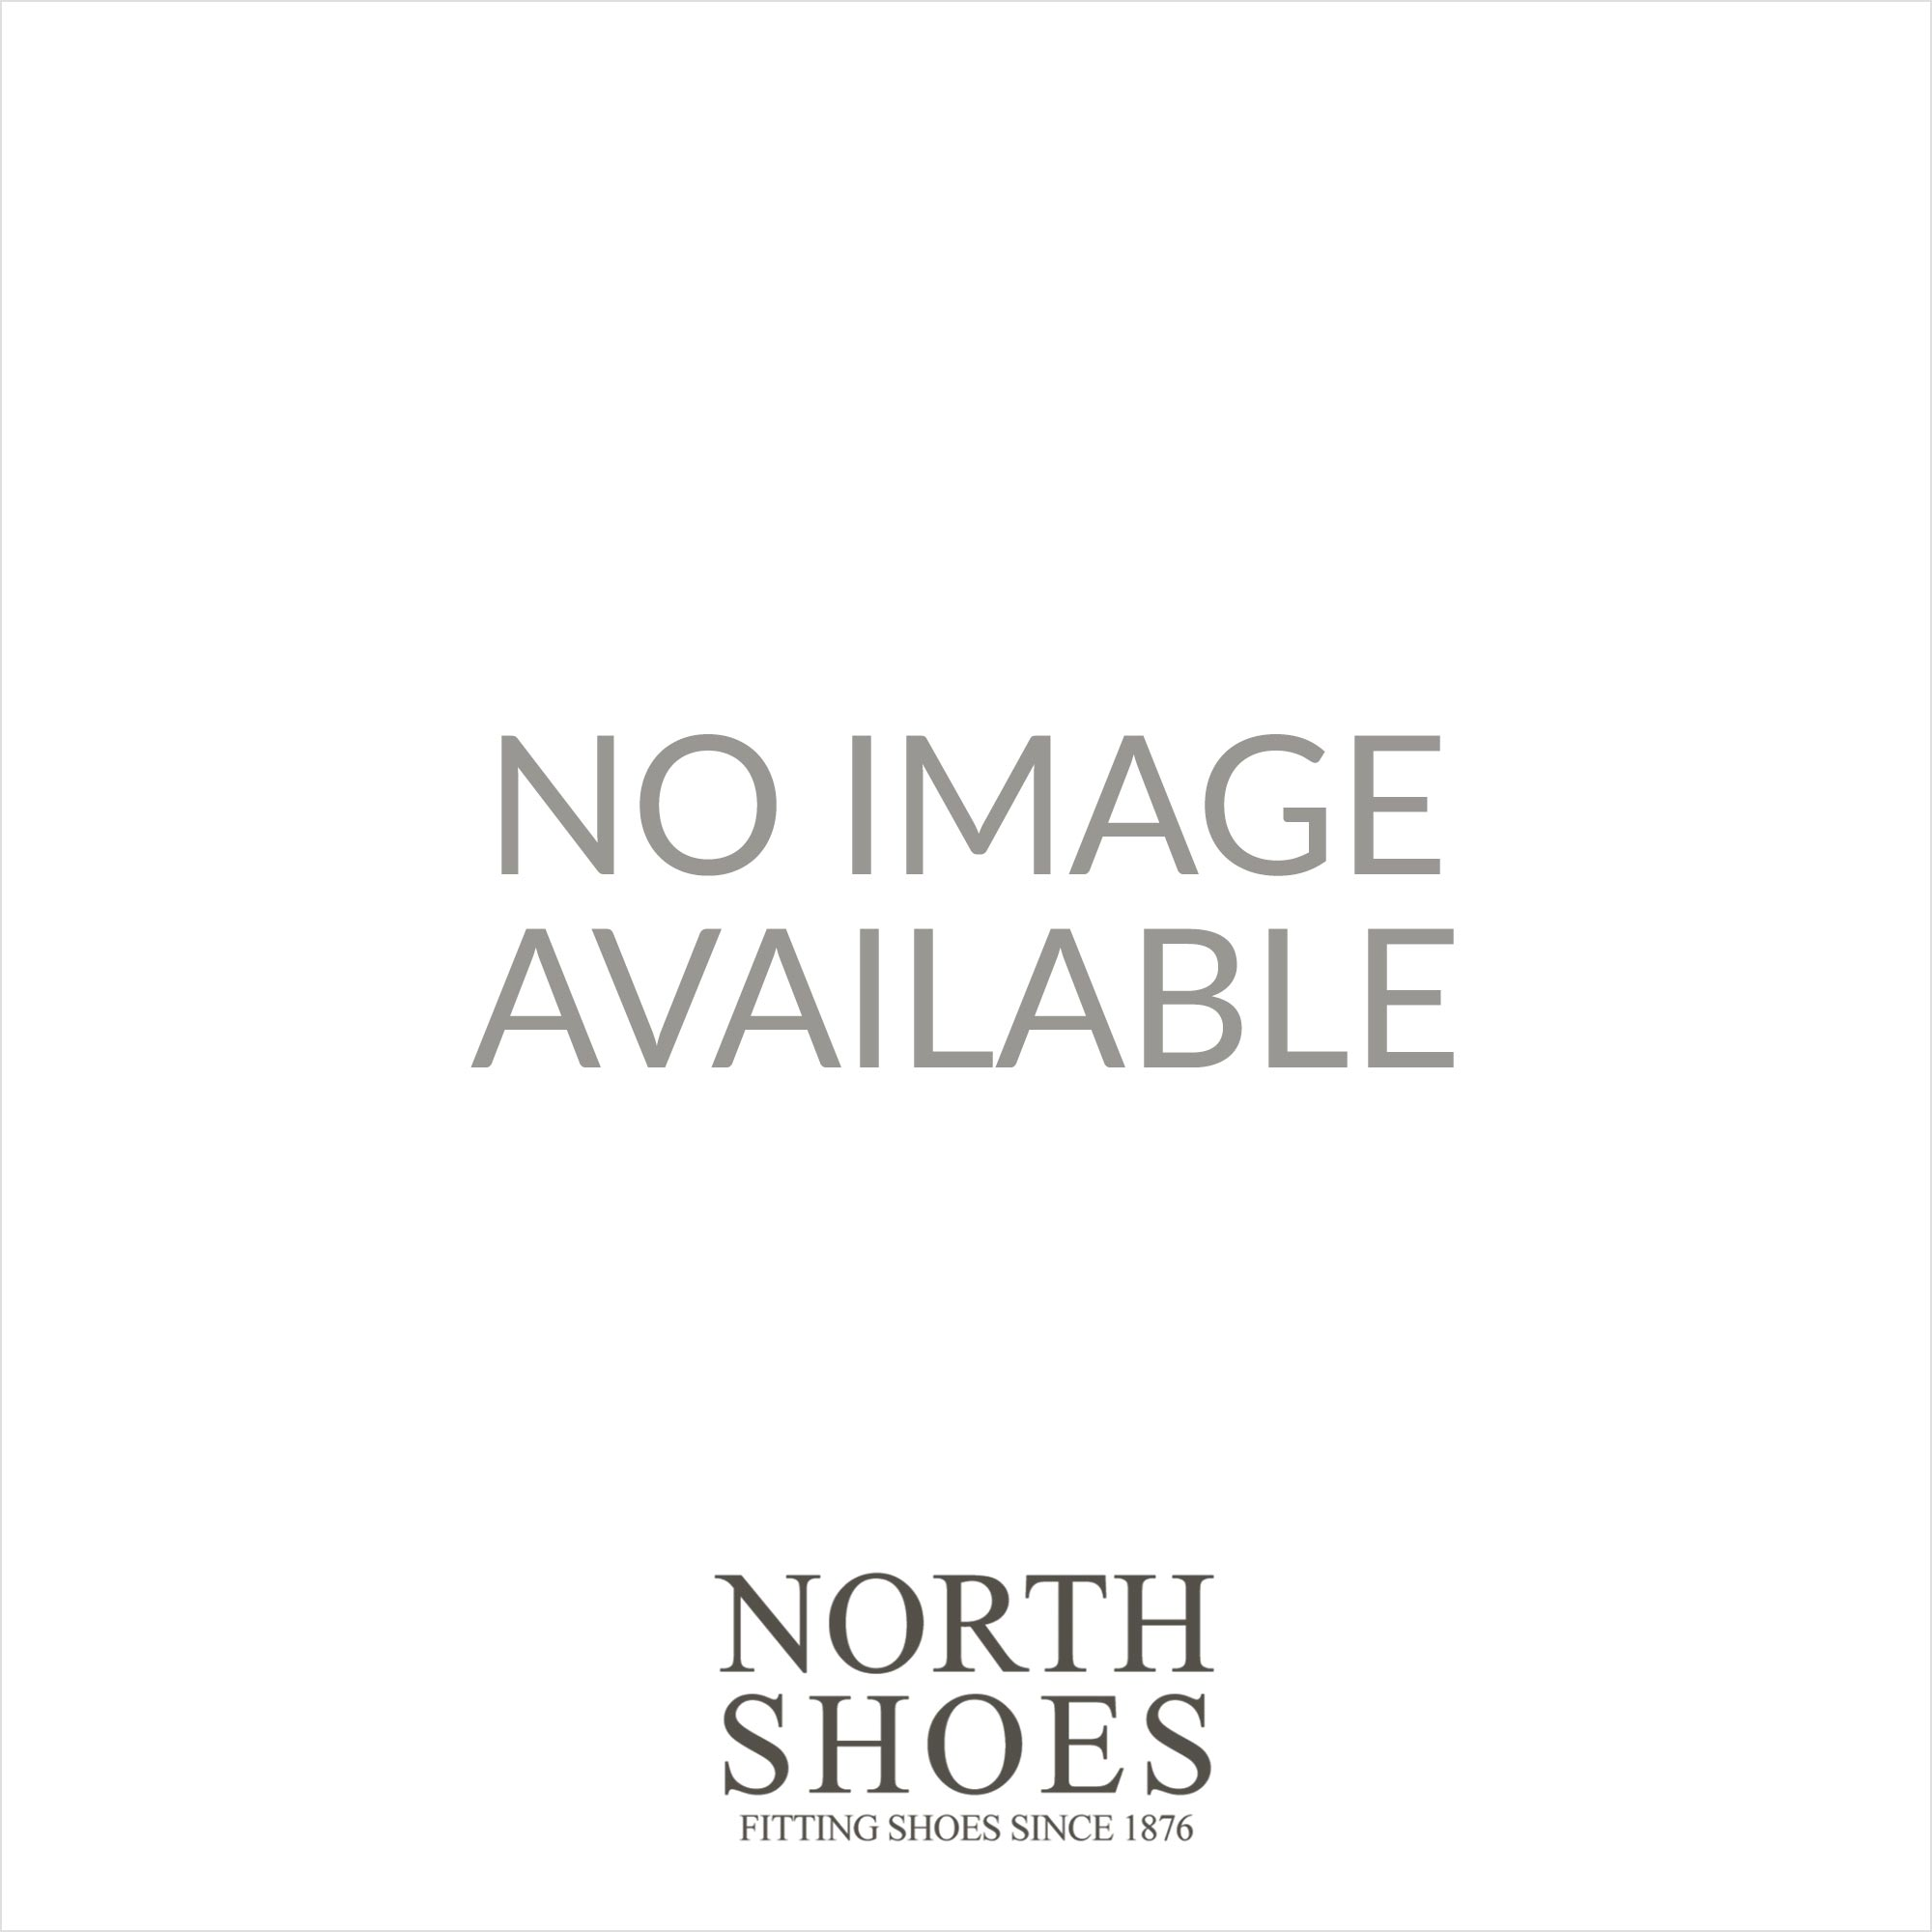 Nuria Raspberry Suede Leather Womens Strapy Espadrille Sandal